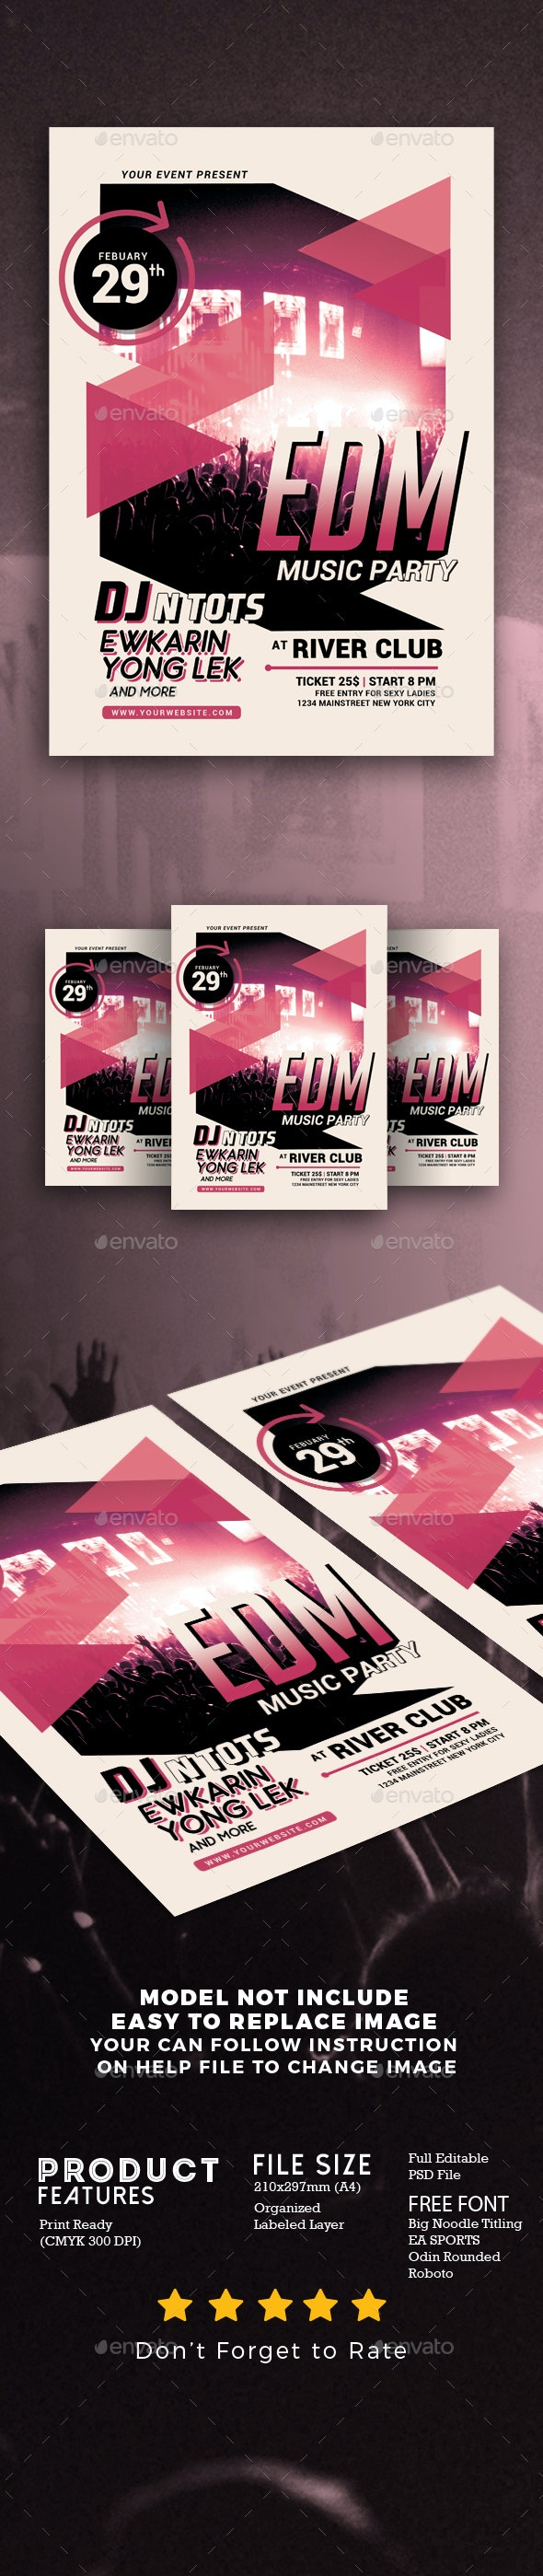 EDM Music Party Flyer - Events Flyers